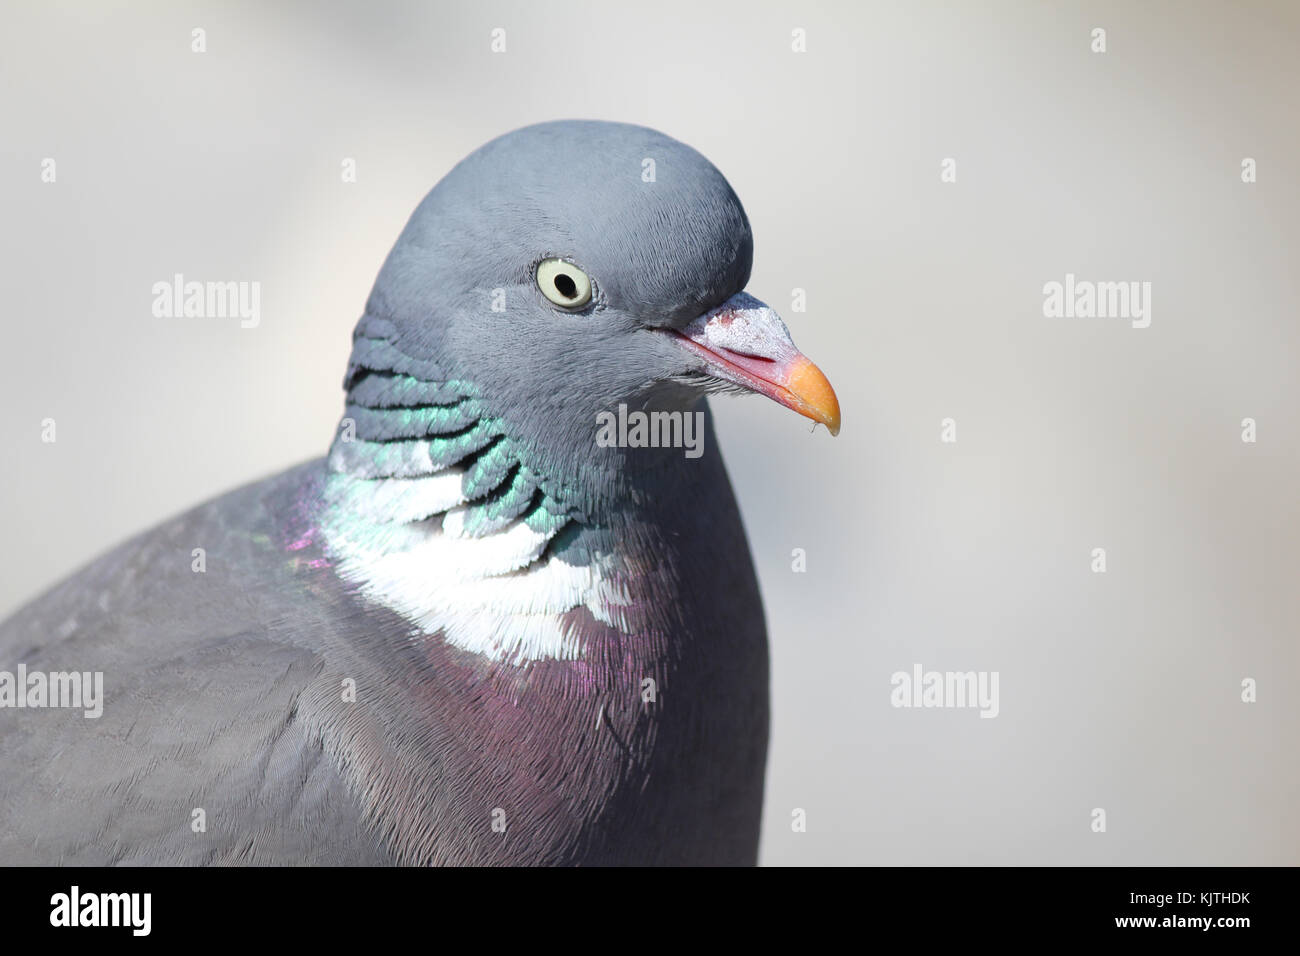 pigeon plague our cities